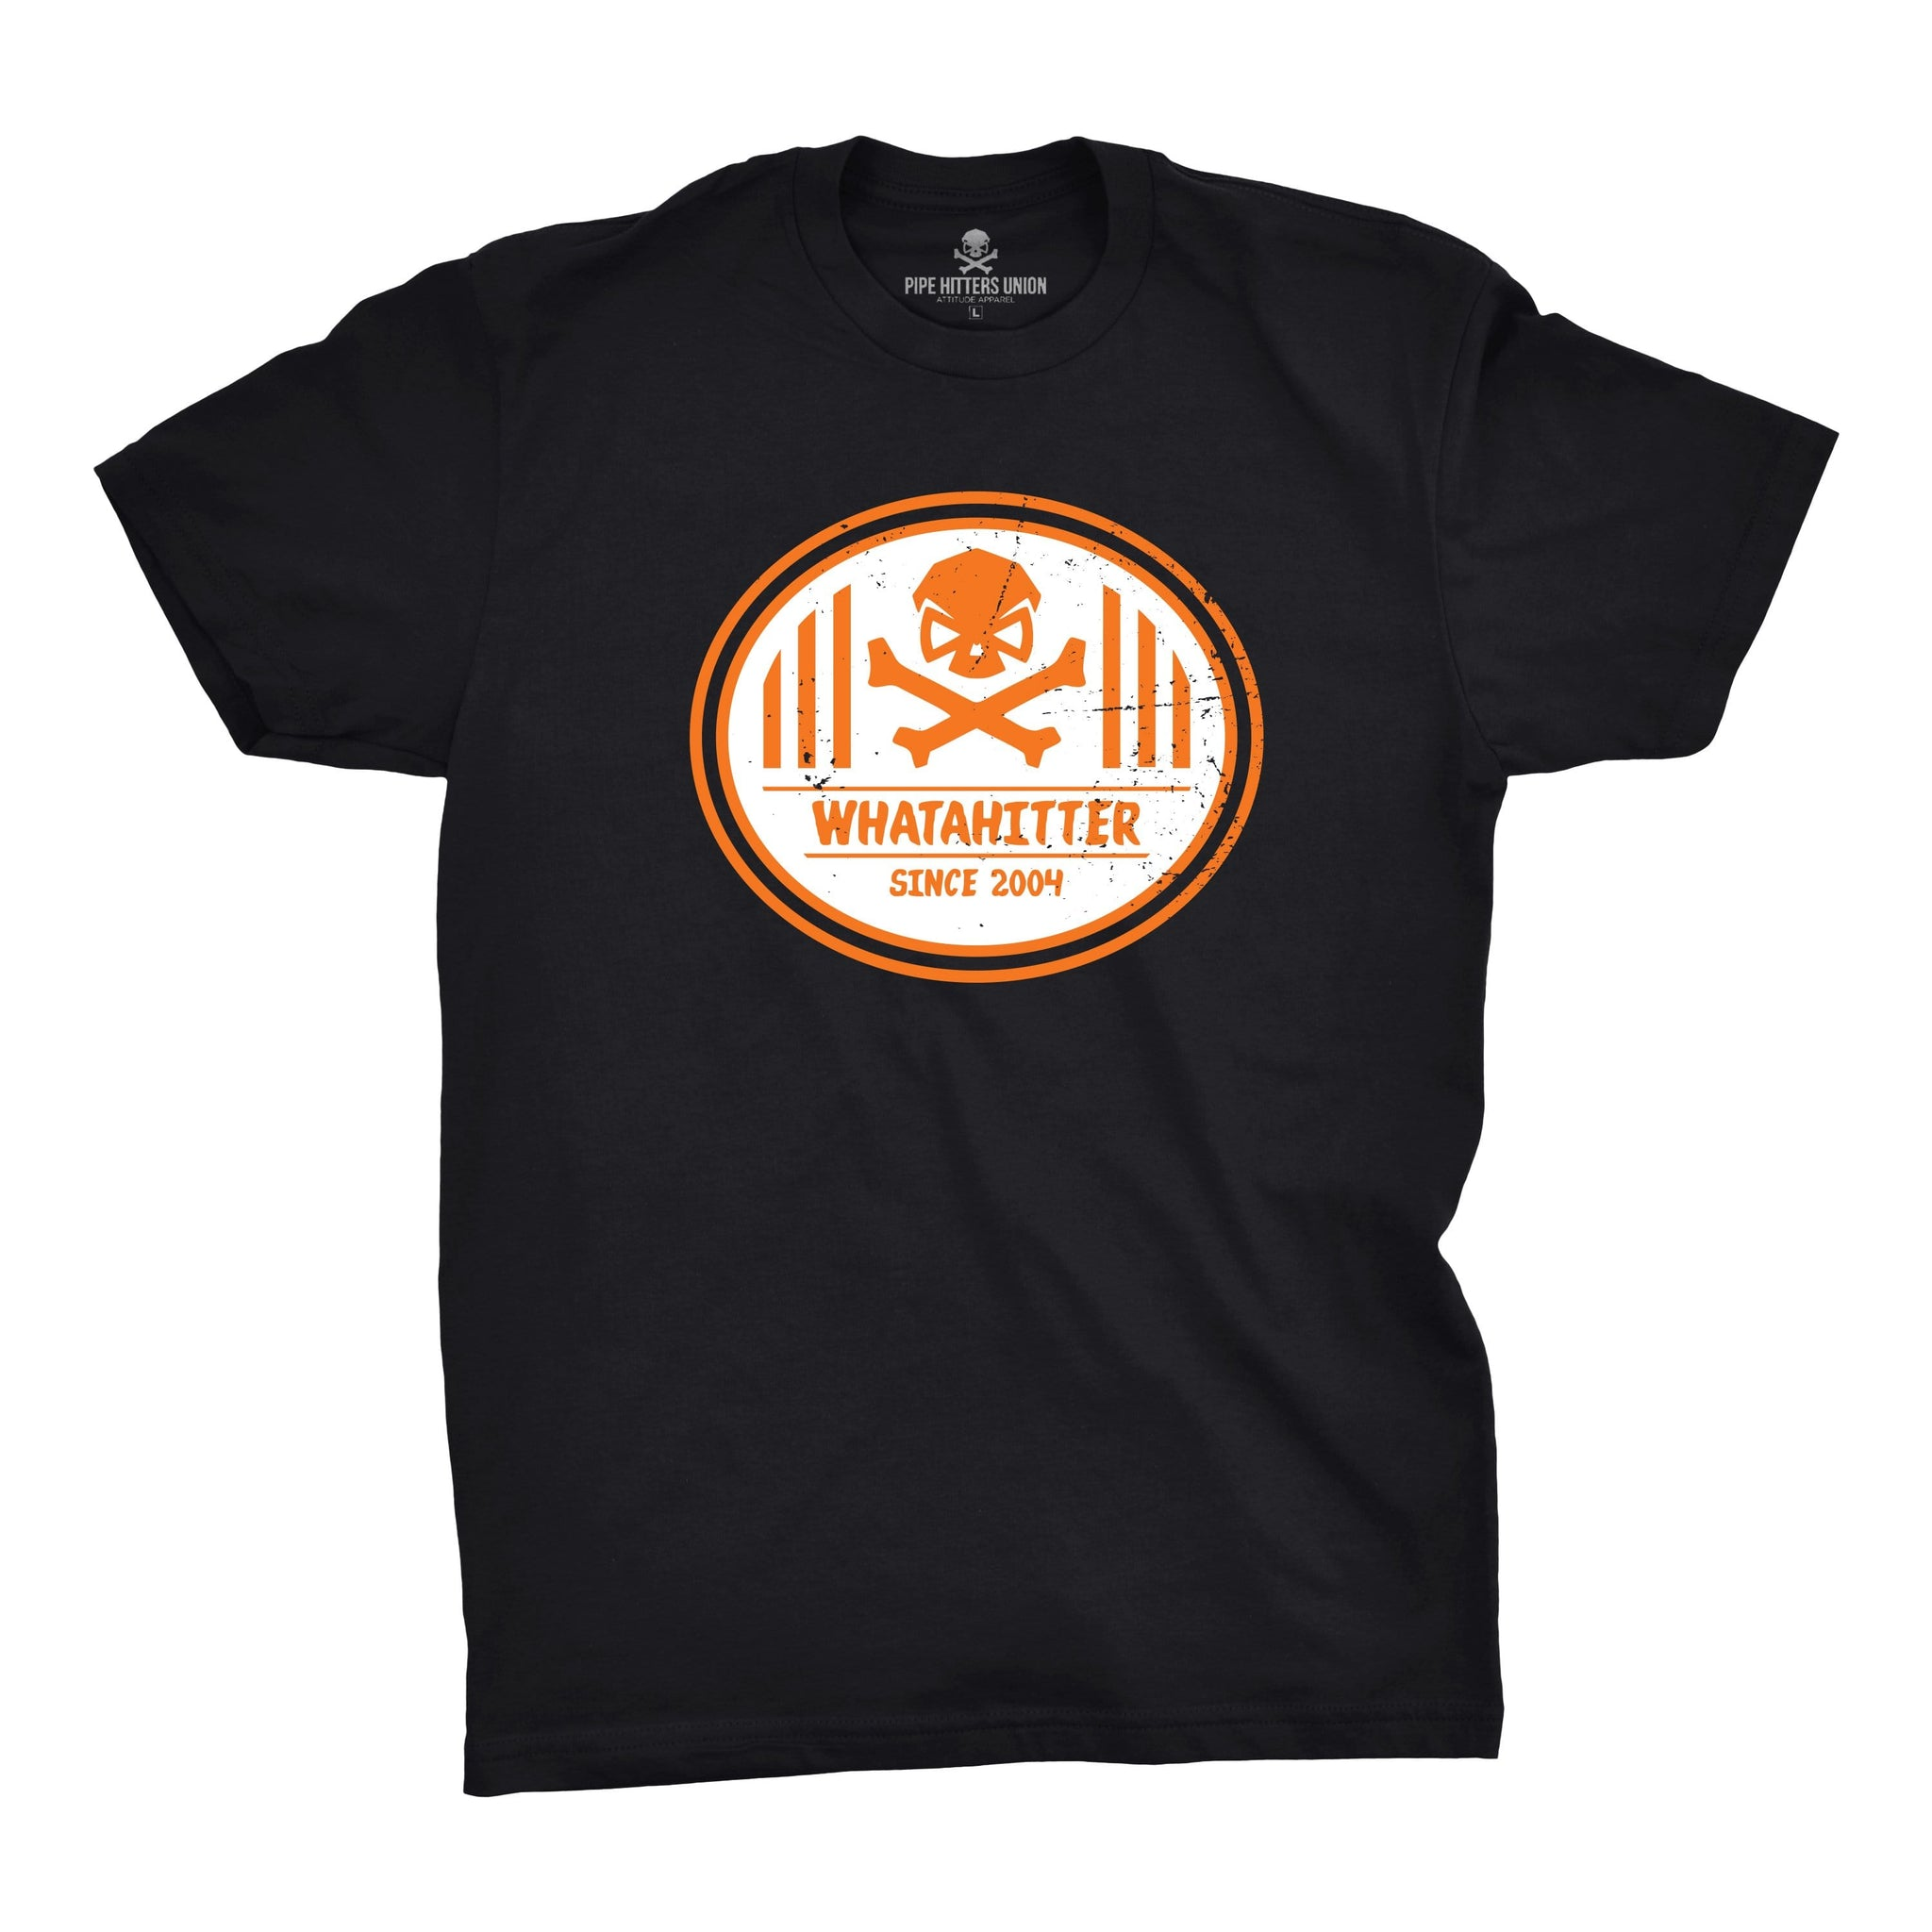 Whatahitter - Black - T-Shirts - Pipe Hitters Union